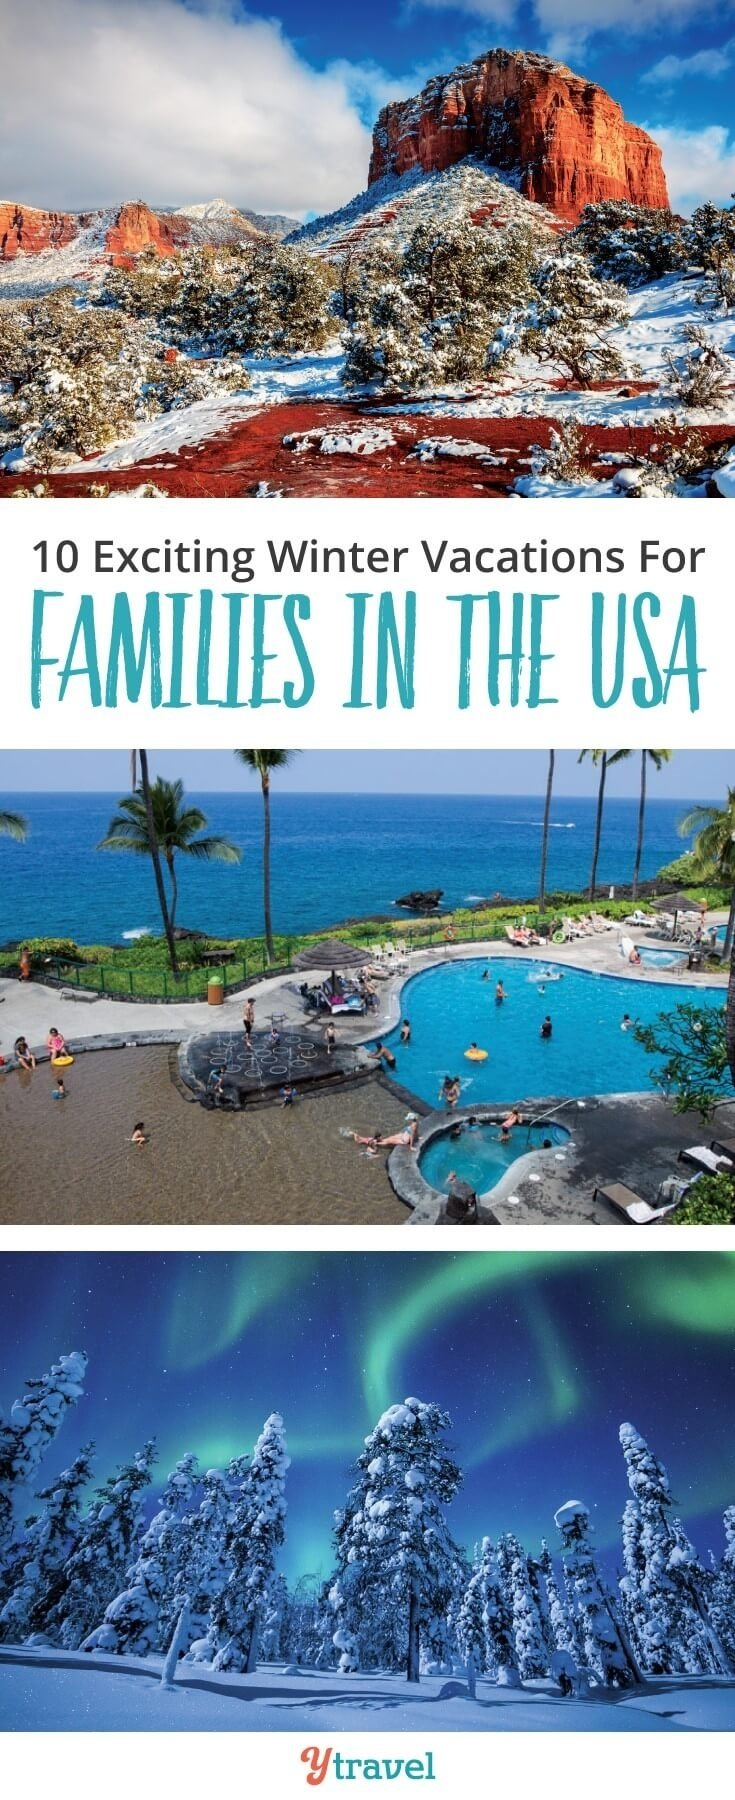 10 Gorgeous Winter Vacation Ideas For Families 10 exciting winter vacations for families in the usa 2020